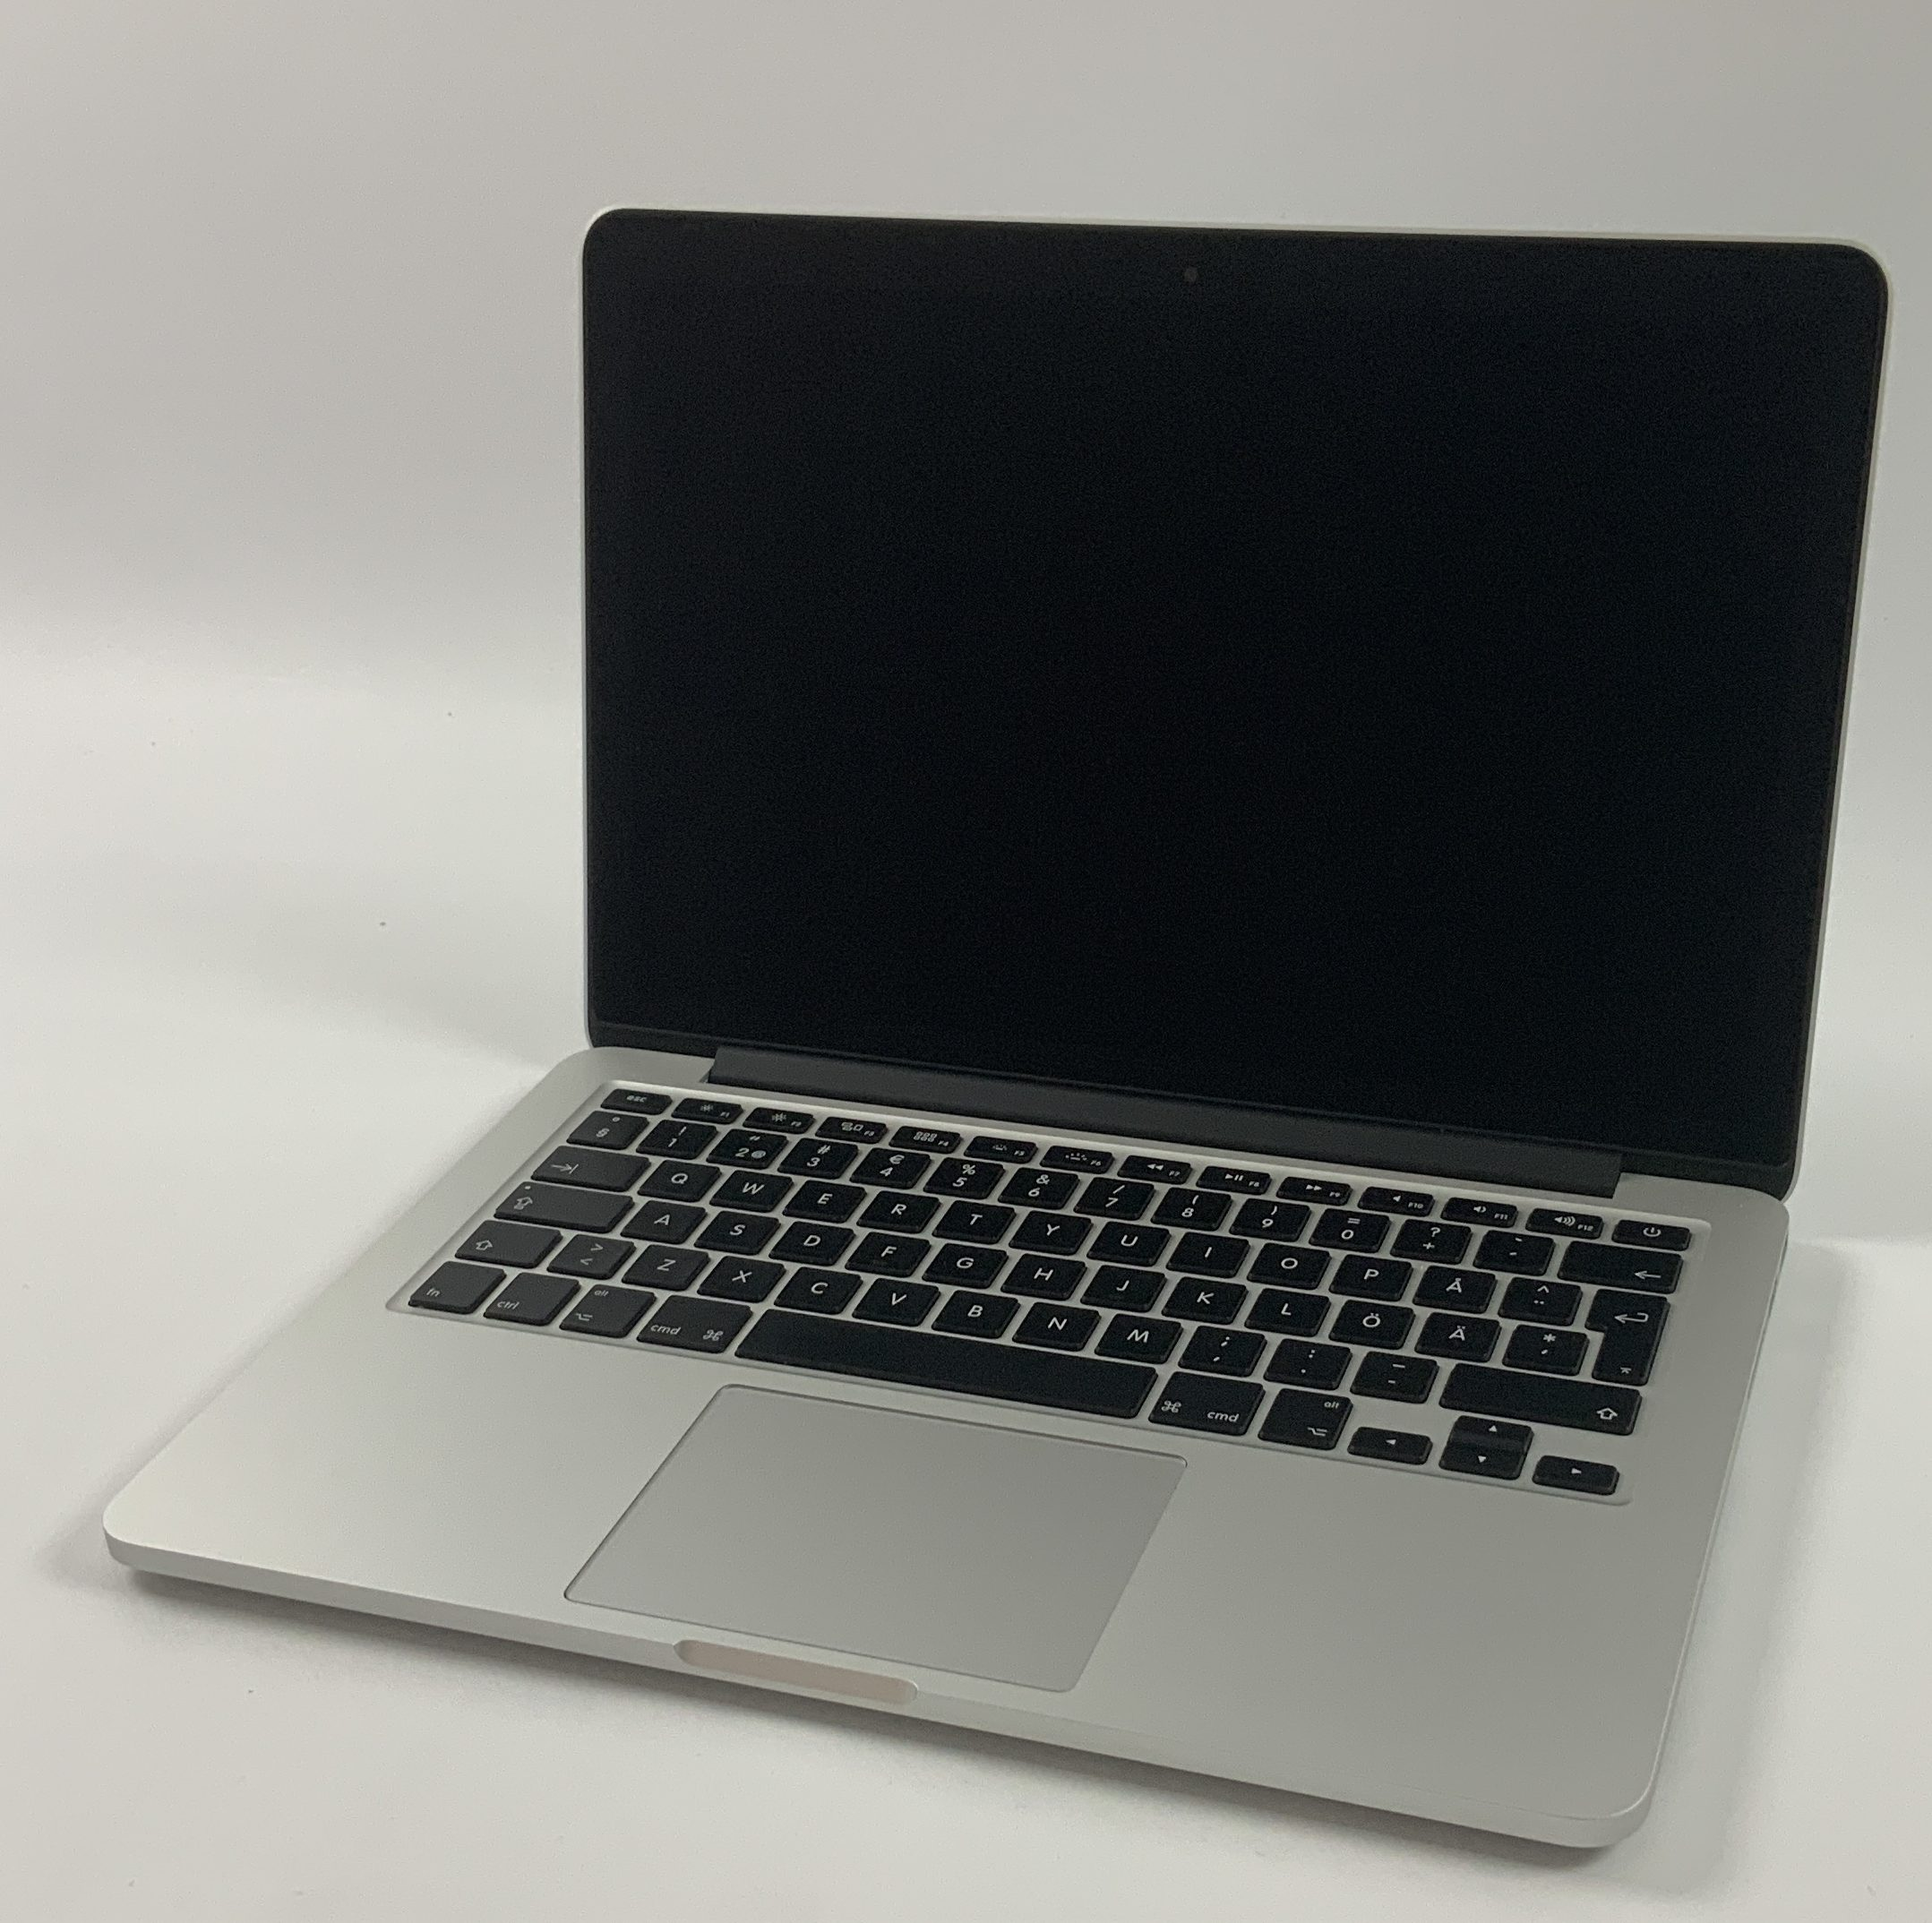 "MacBook Pro Retina 13"" Early 2015 (Intel Core i5 2.9 GHz 16 GB RAM 512 GB SSD), Intel Core i5 2.9 GHz, 16 GB RAM, 512 GB SSD, Bild 1"